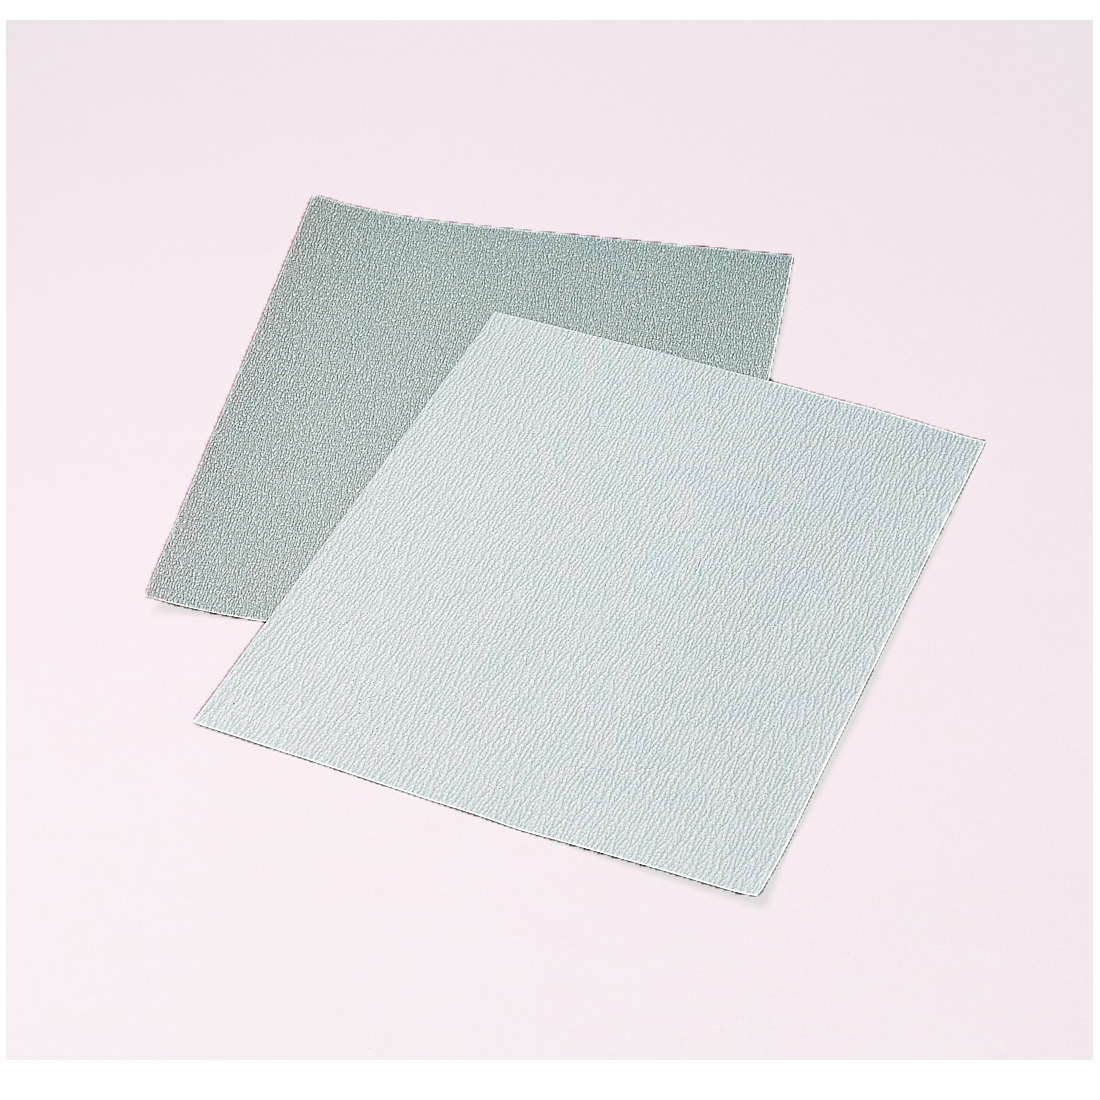 3M™ 051141-27849 Coated Sanding Sheet, 11 in L x 9 in W, 400 Grit, Super Fine Grade, Silicon Carbide Abrasive, Paper Backing